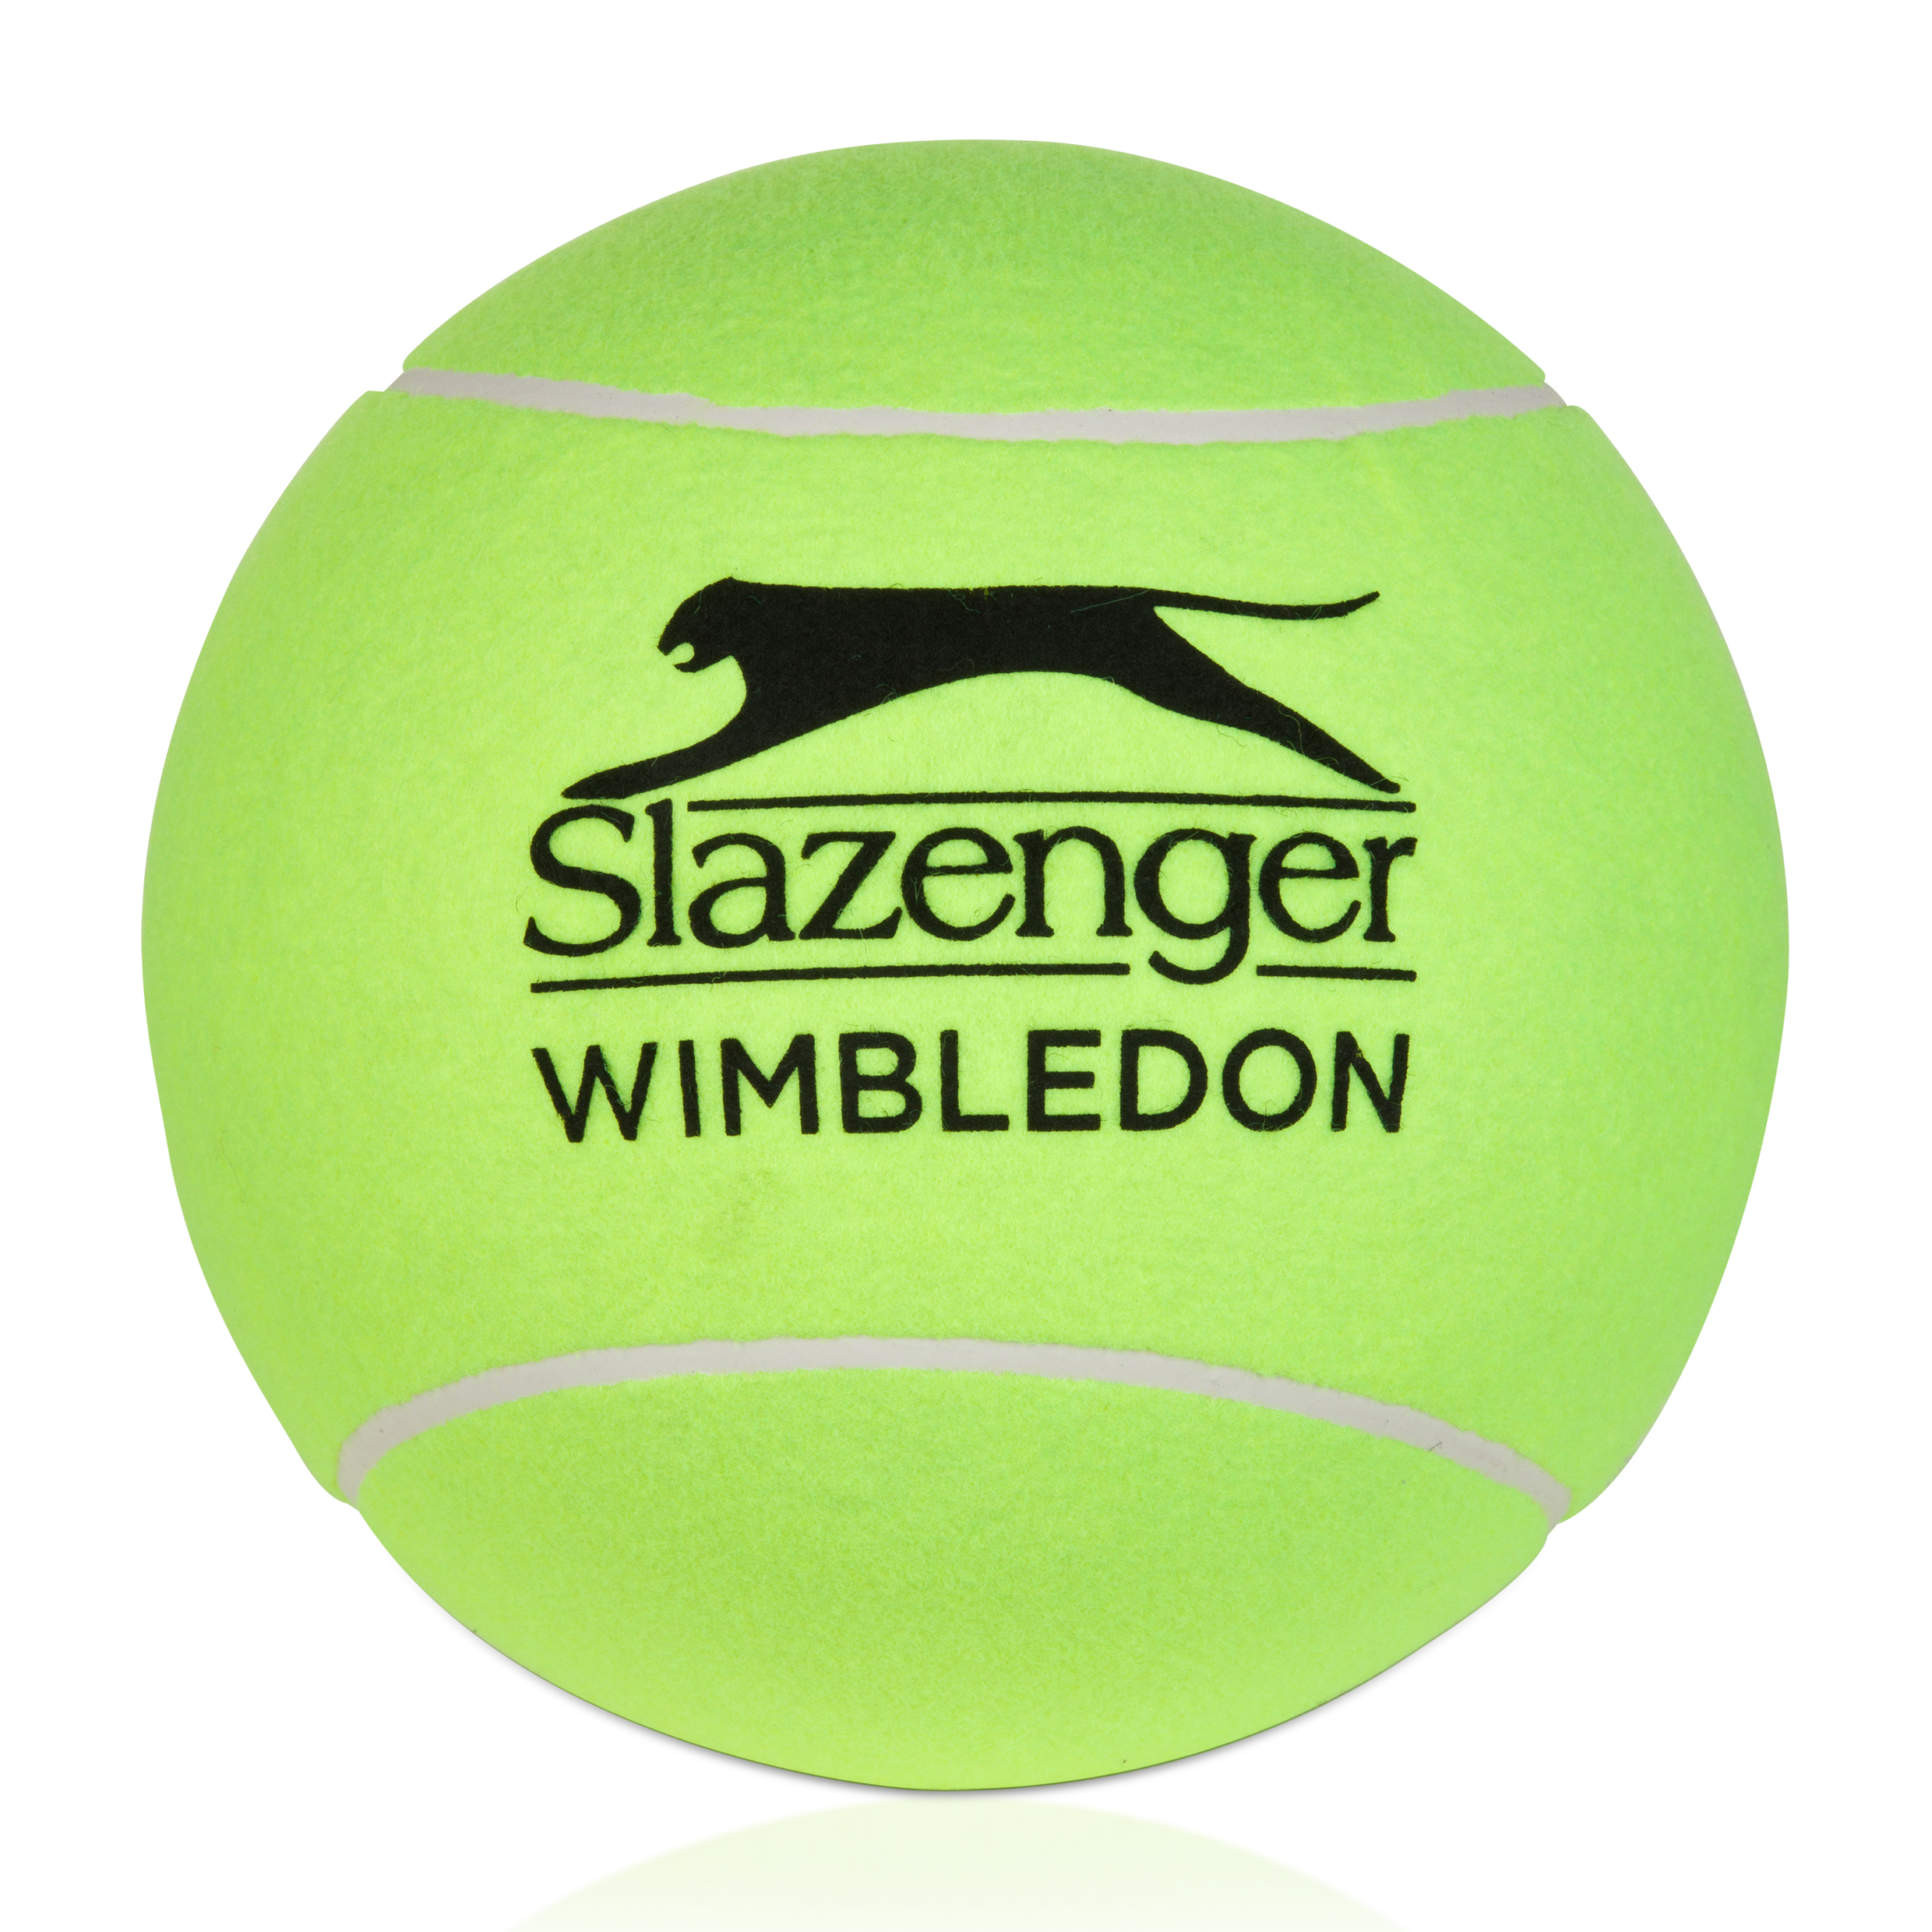 Wimbledon Slazenger Giant Tennis Ball - Yellow